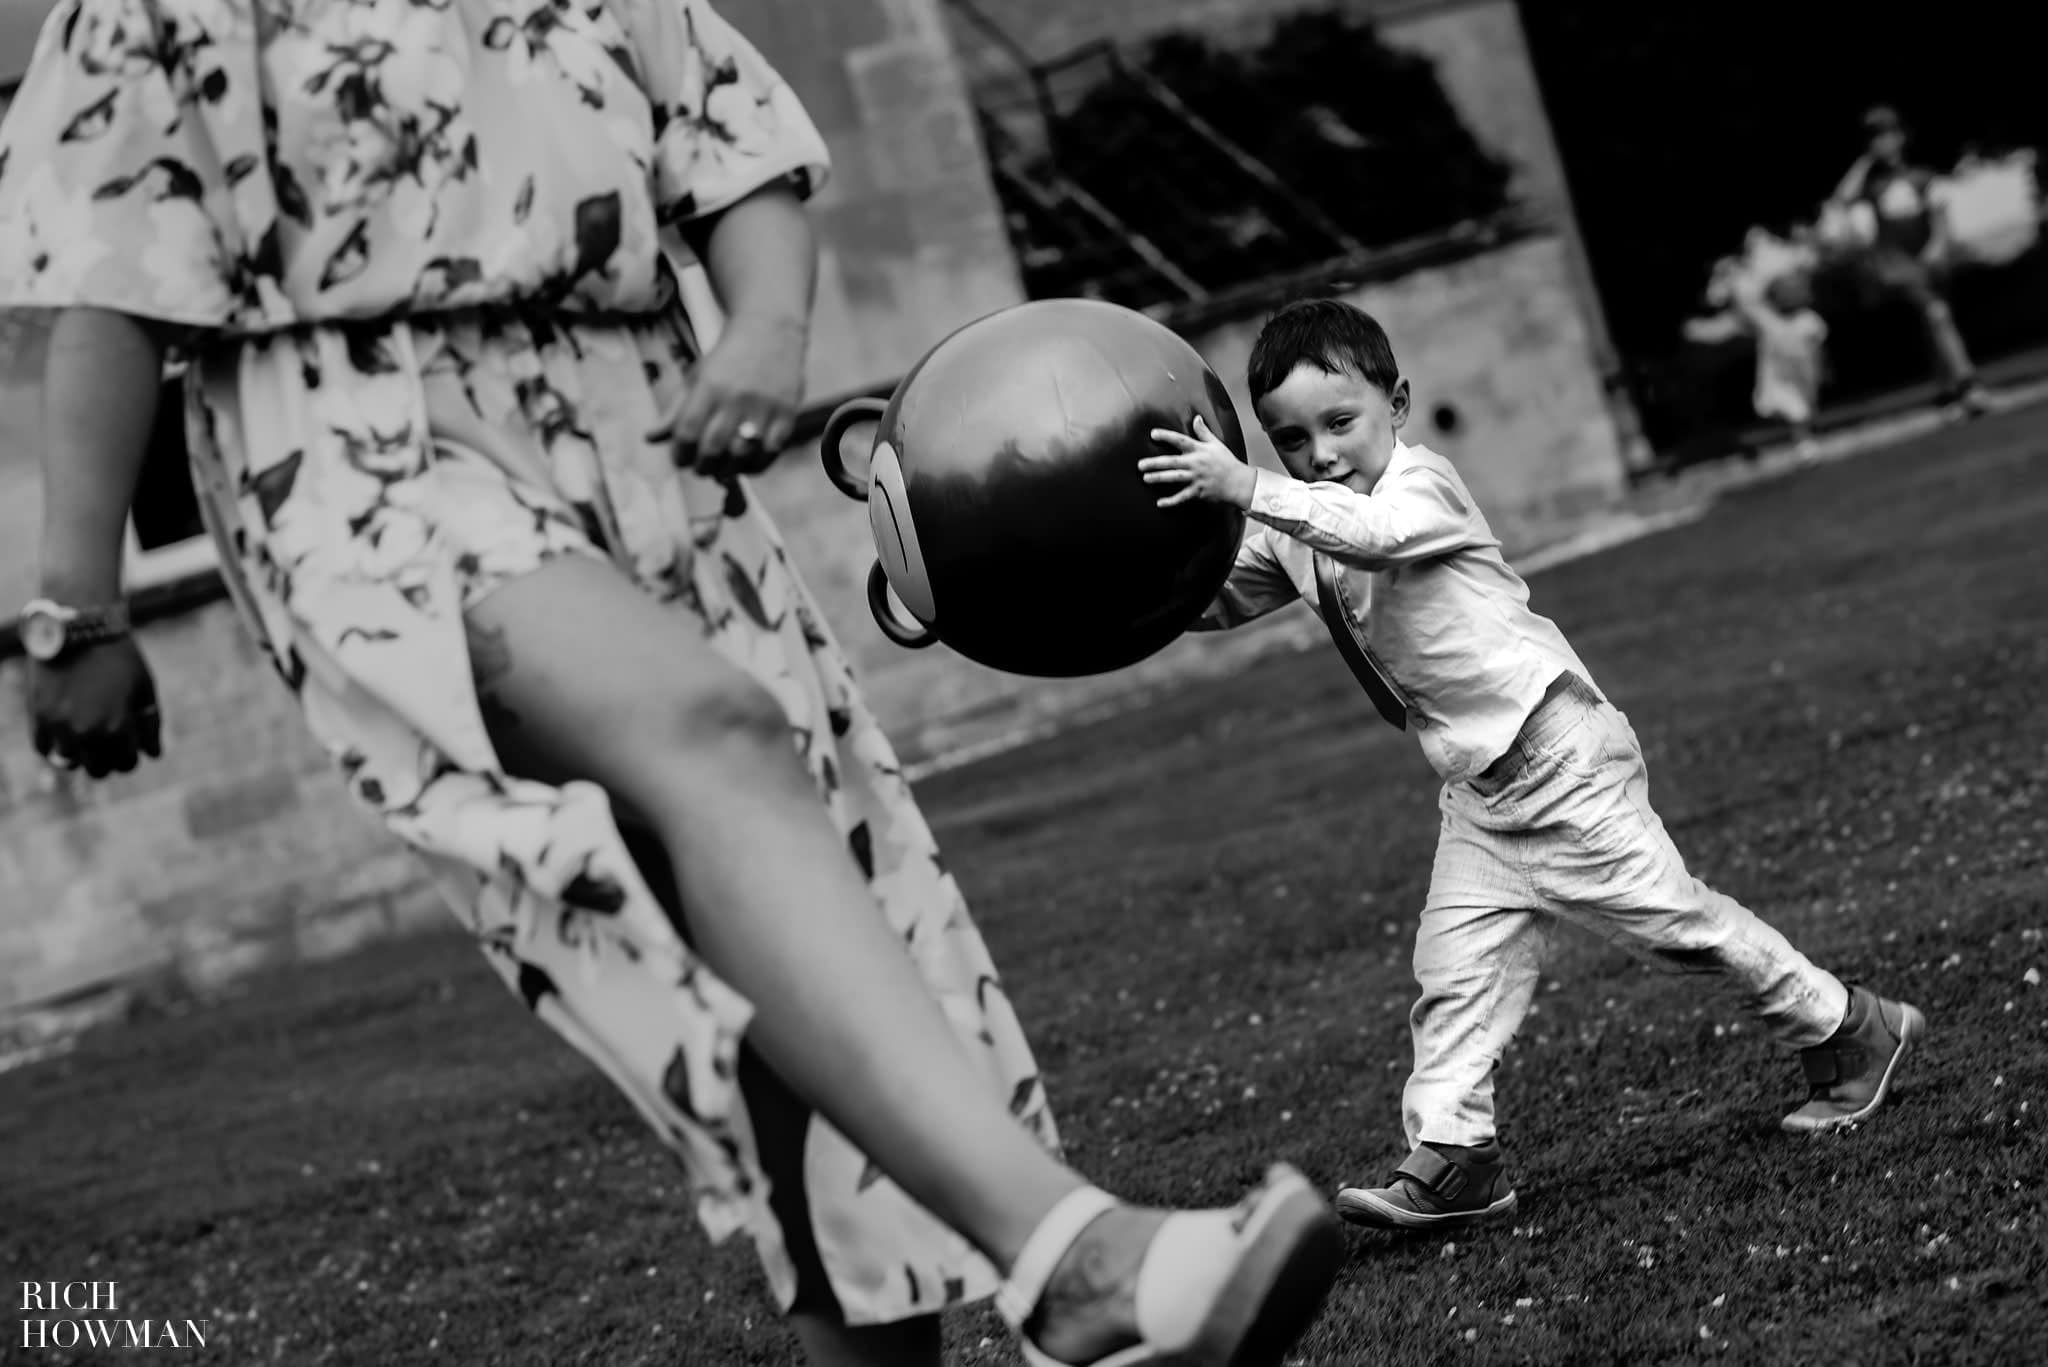 A little boy plays with a space hopper during a wedding at the Leigh Park Hotel in Bradford on Avon in Wiltshire